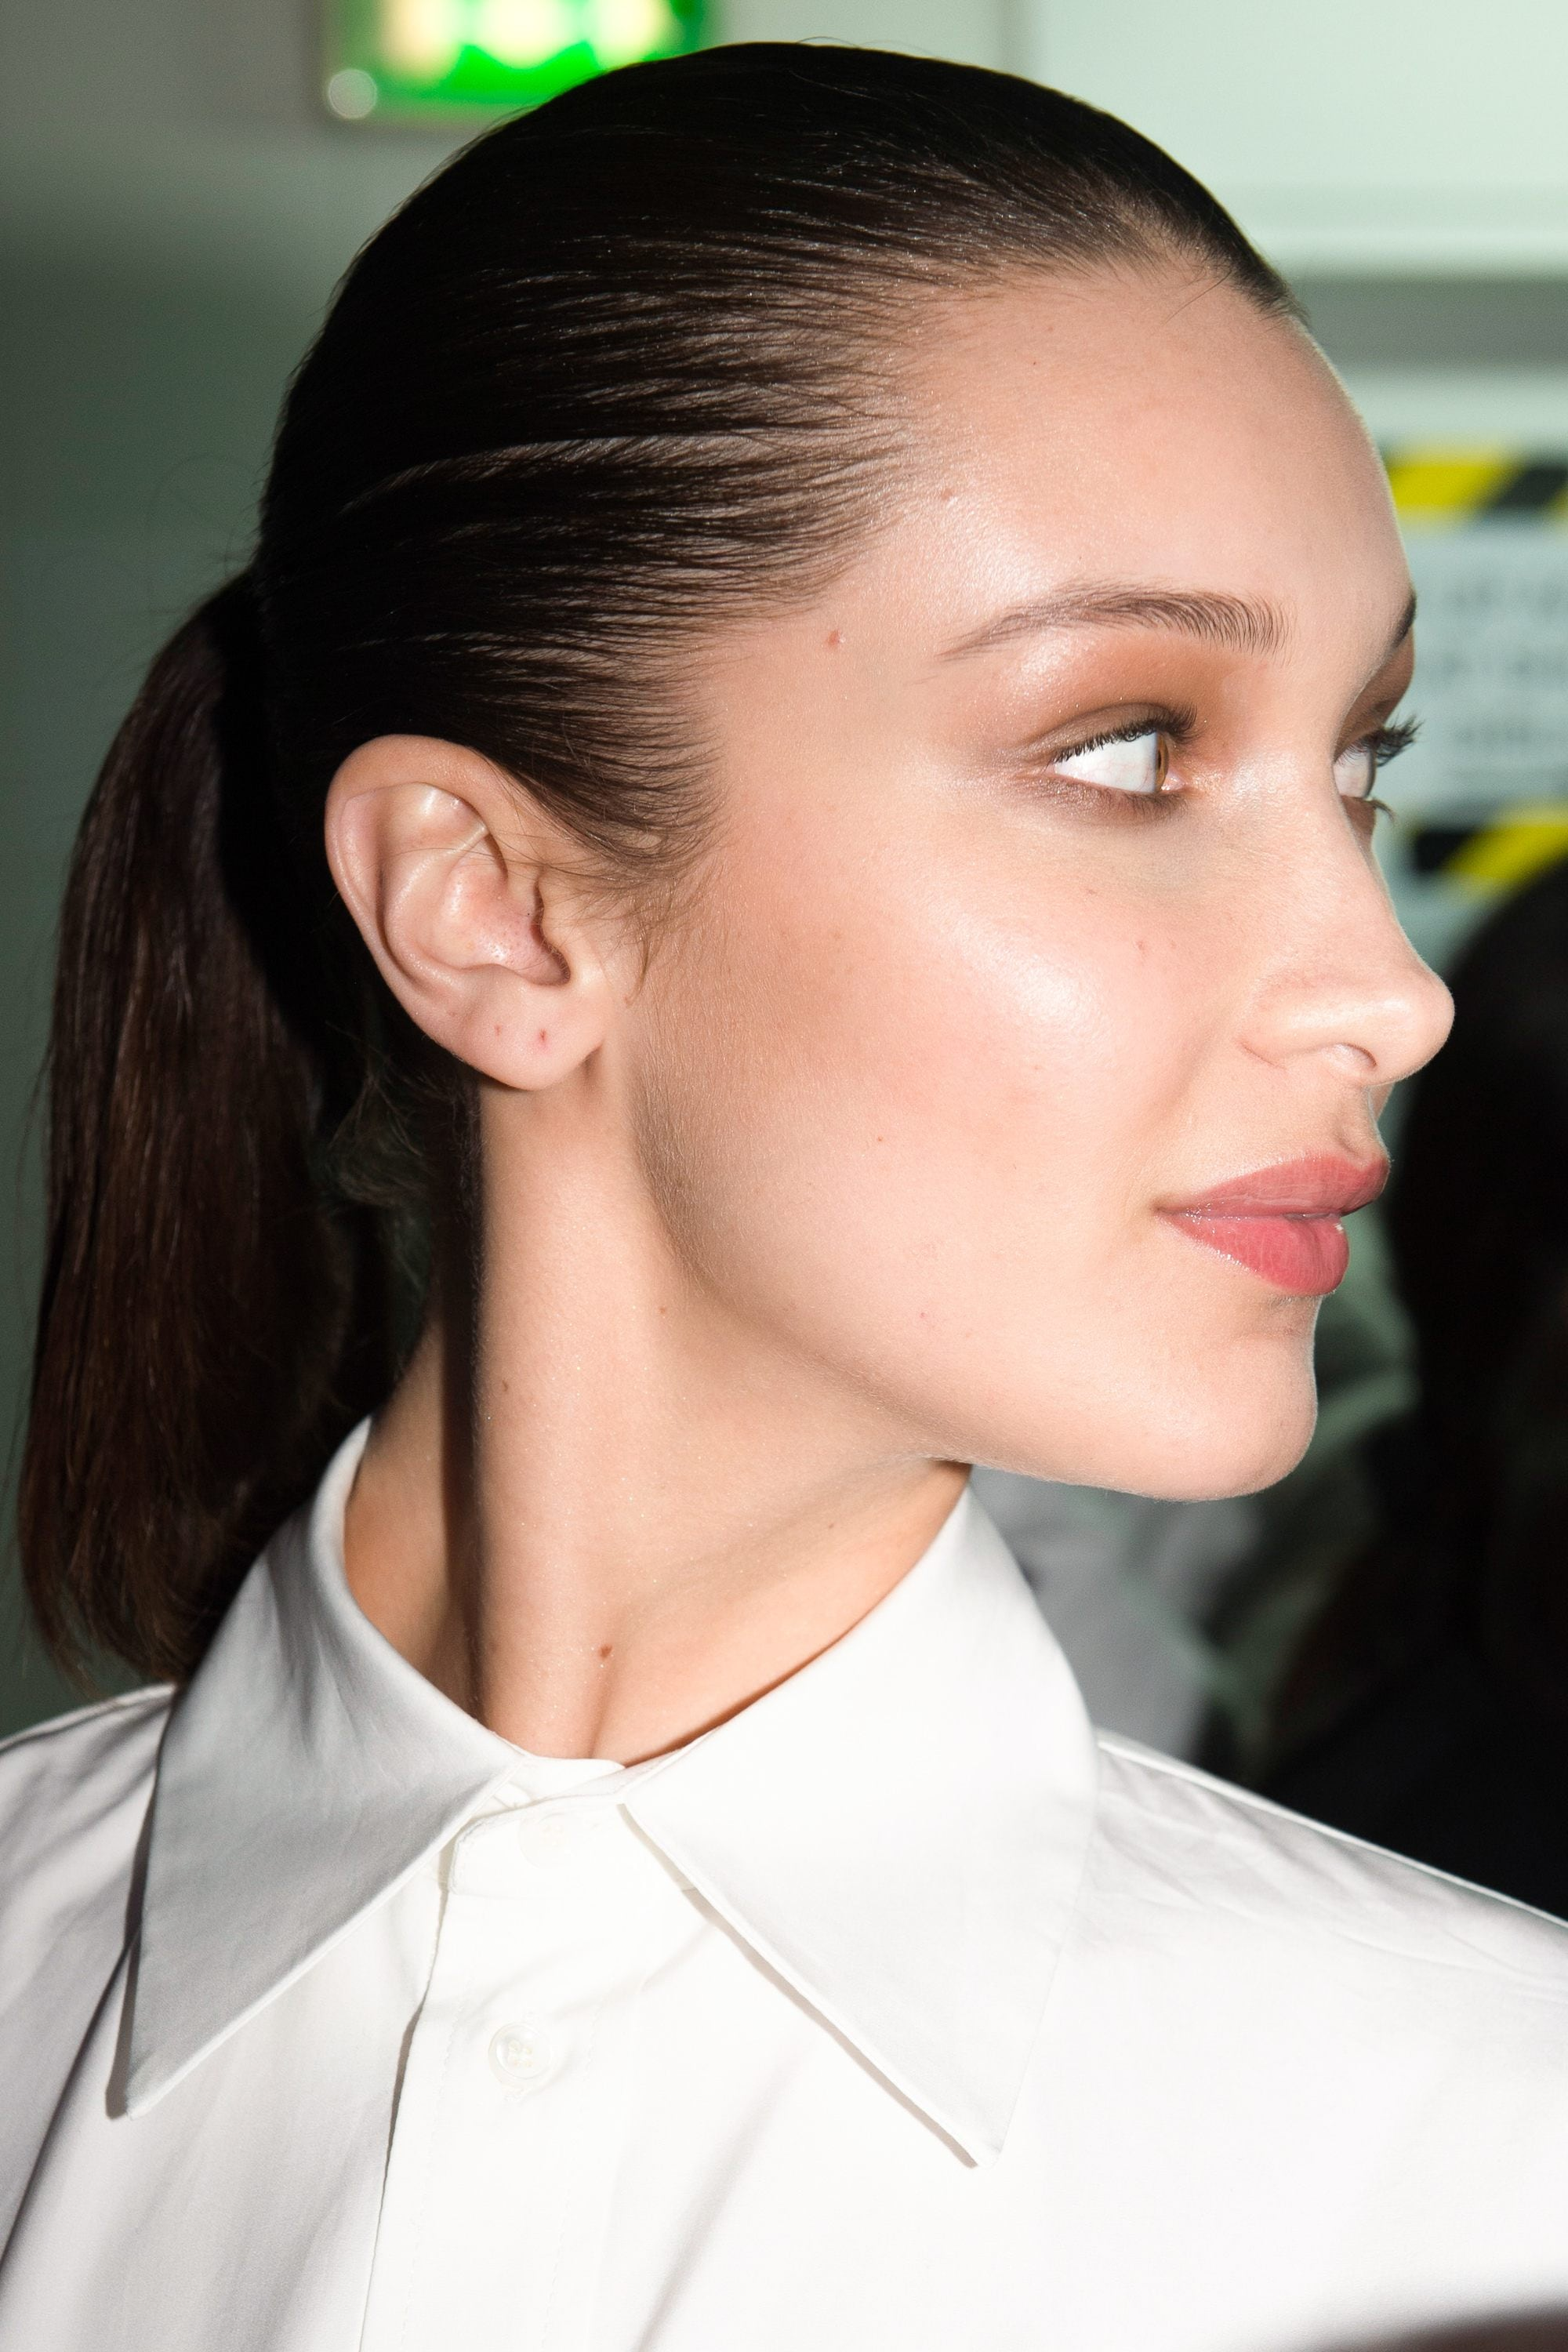 work hairstyles for long hair: side view of bella hadid with straight dark brown hair styles in a smooth ponytail wearing a collared white shirt